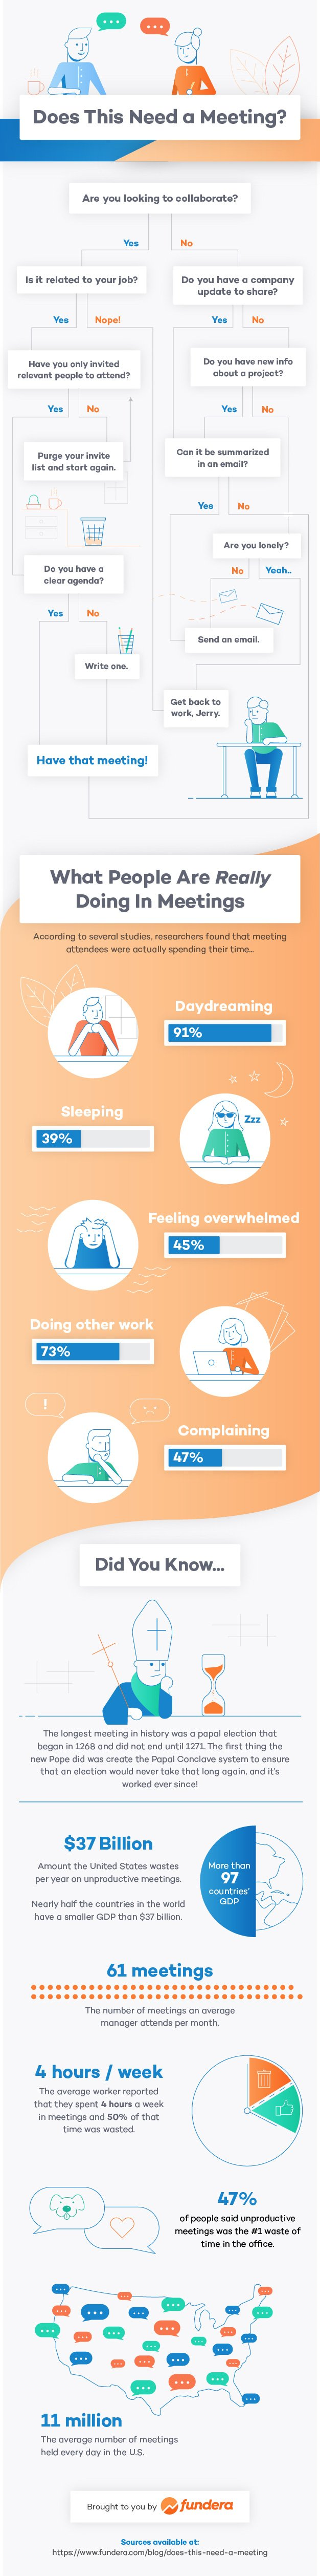 does this need a meeting infographic